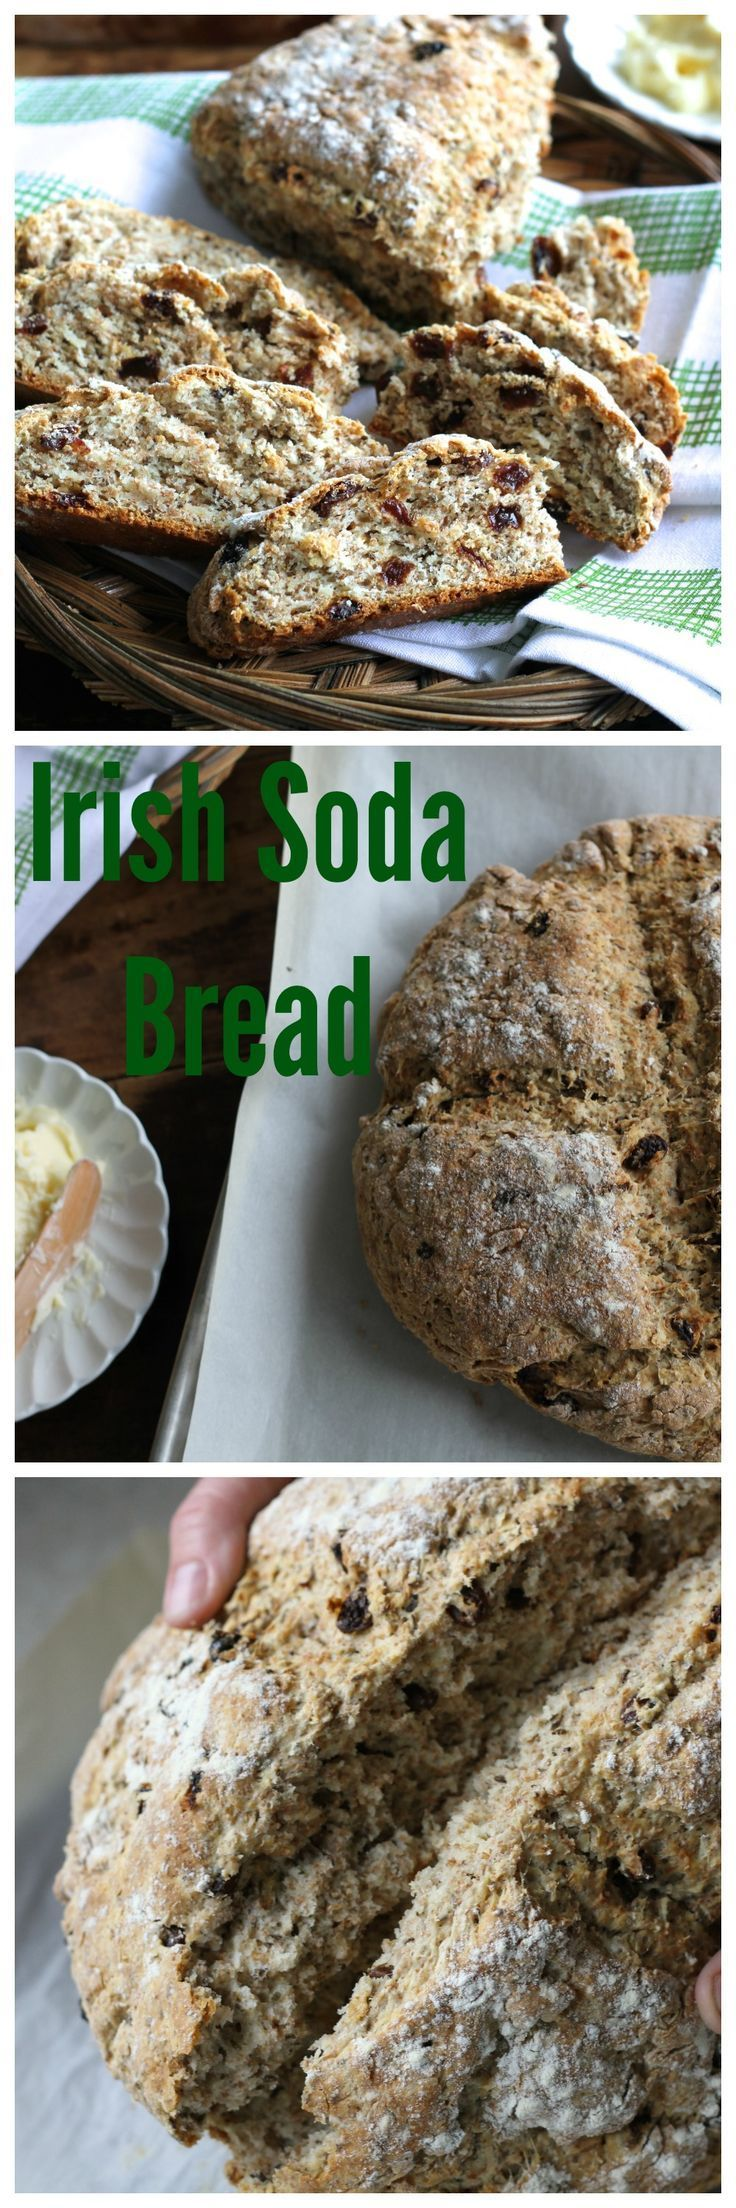 Traditional Irish Soda Bread is easier than you think!  Slathered with salty butter it is out of this world. {Brittany's Pantry}